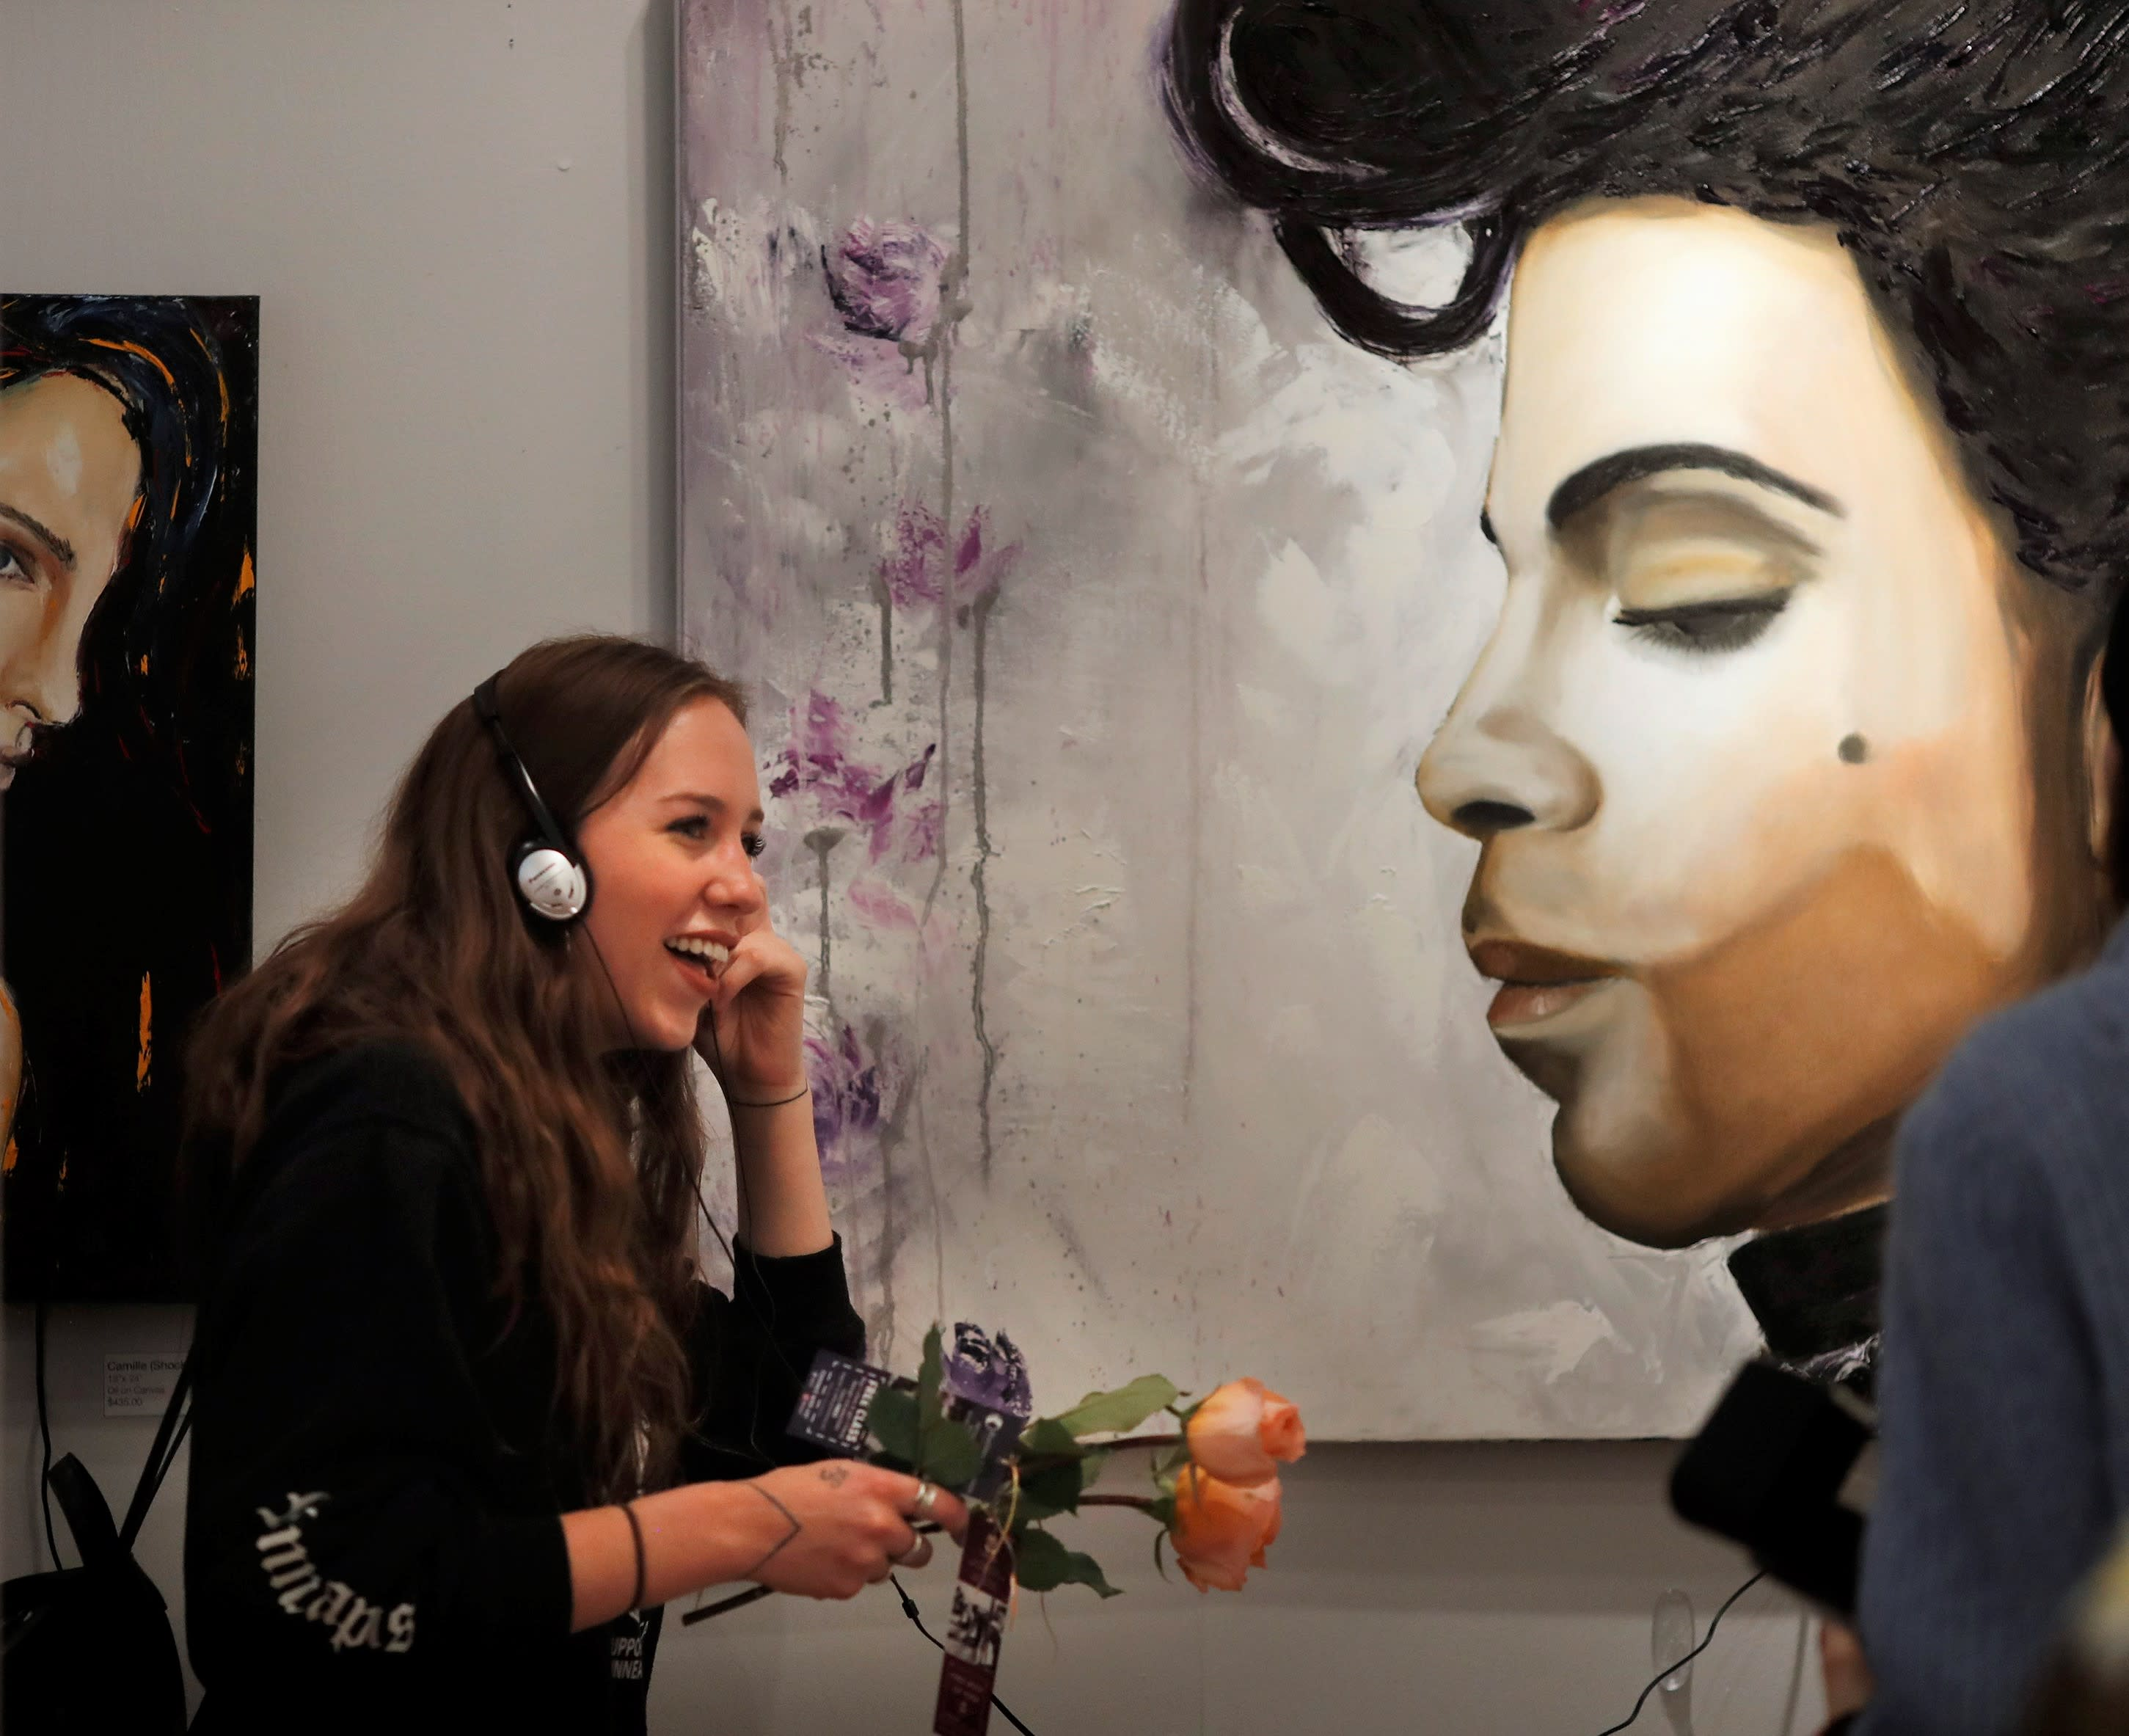 Women standing near large painting of Prince